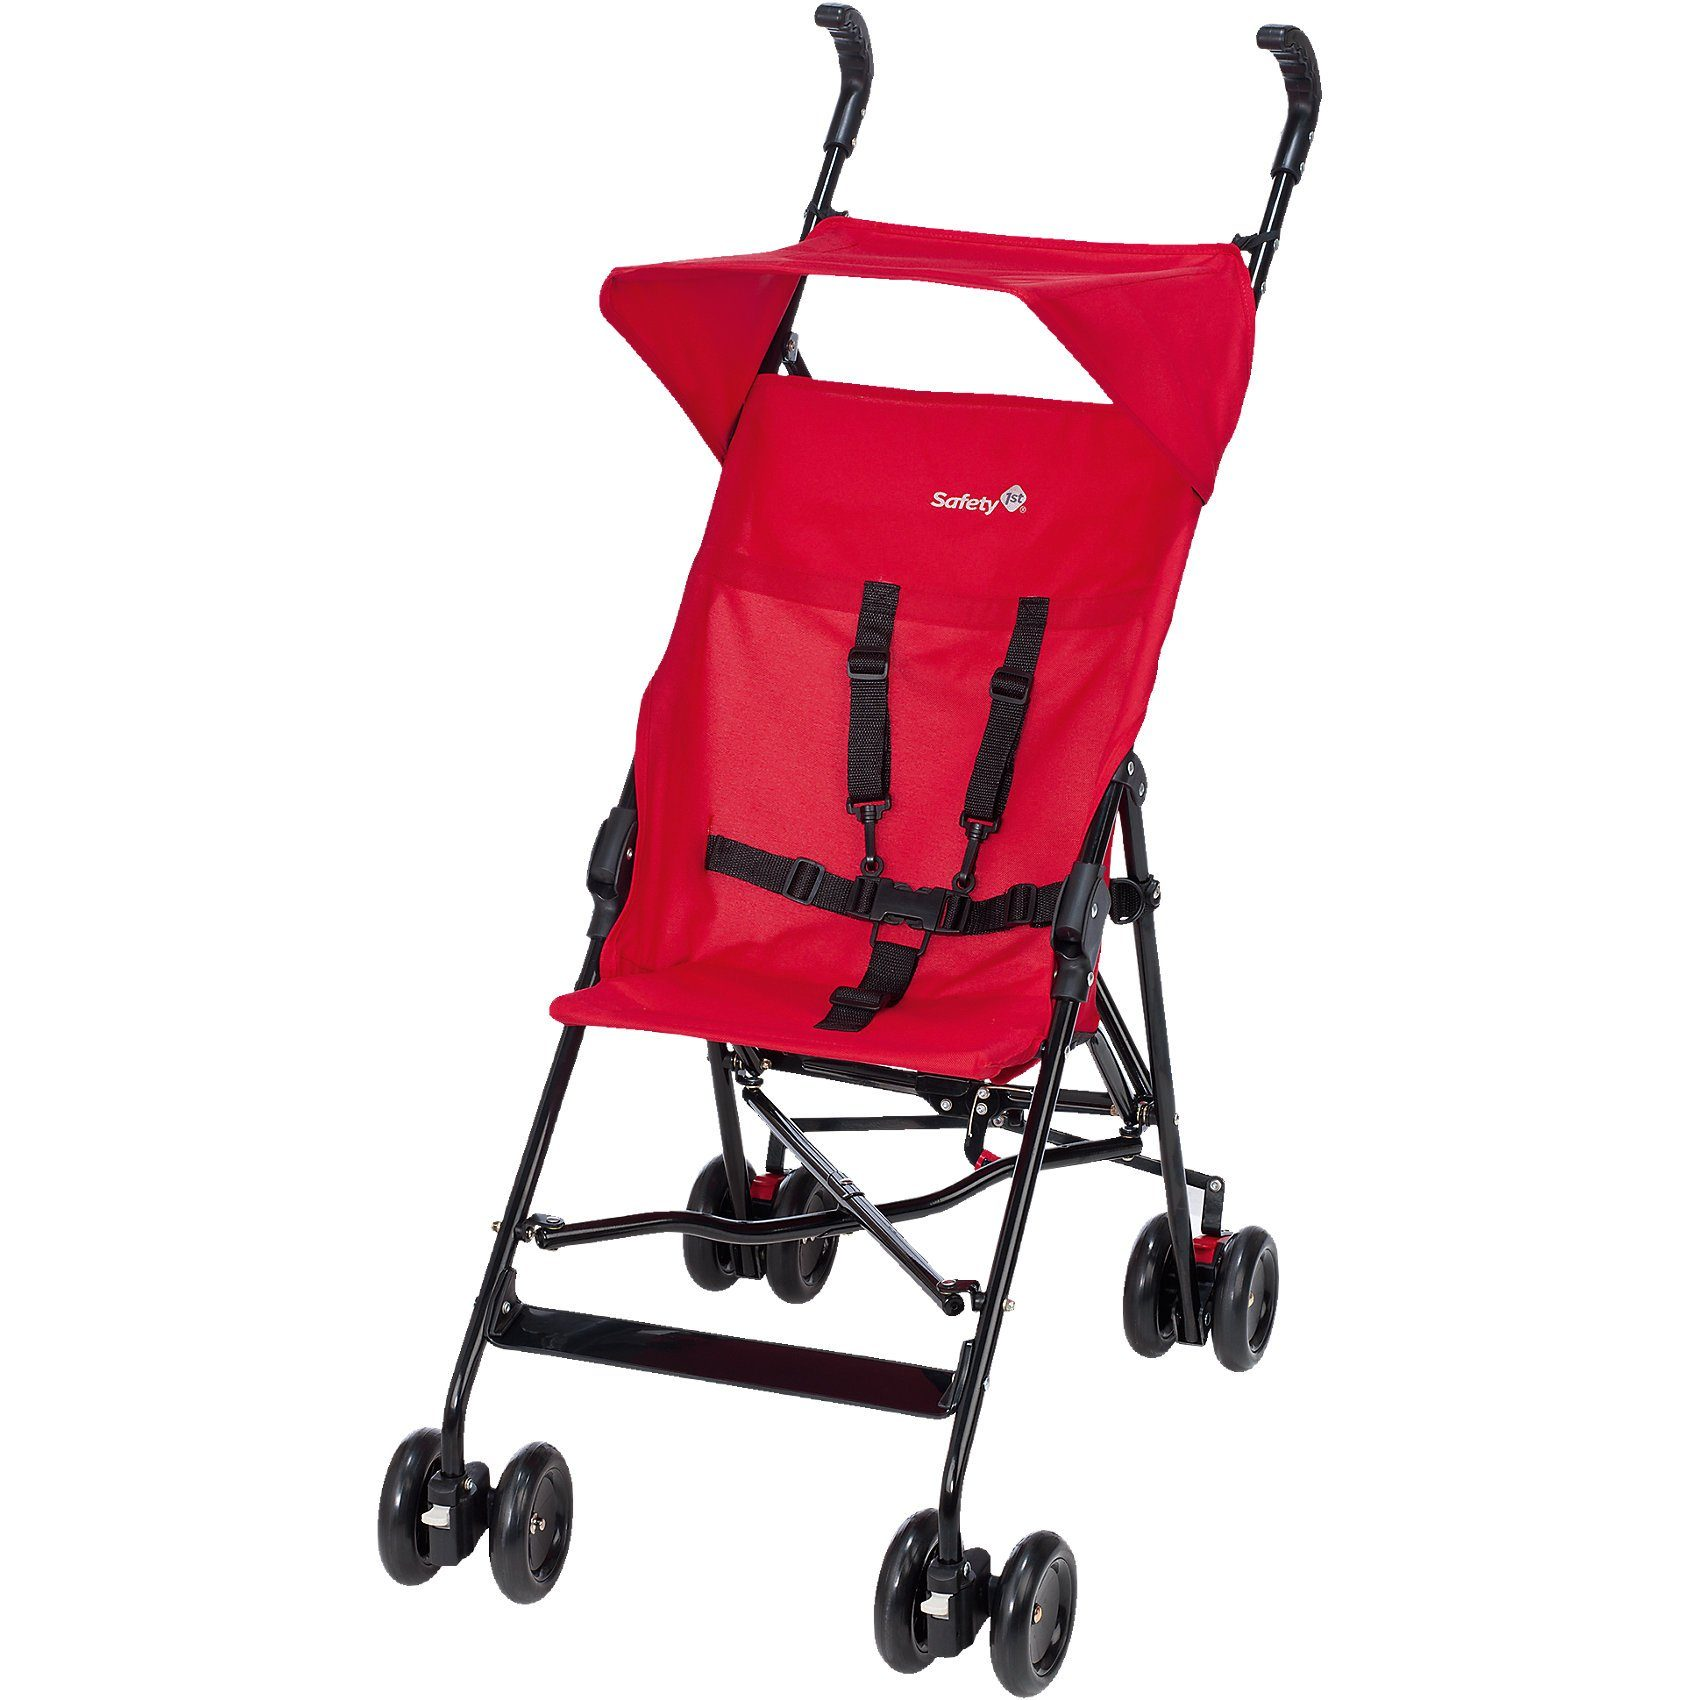 Safety 1st Buggy Peps inkl. Sonnenverdeck, plain red, 2016